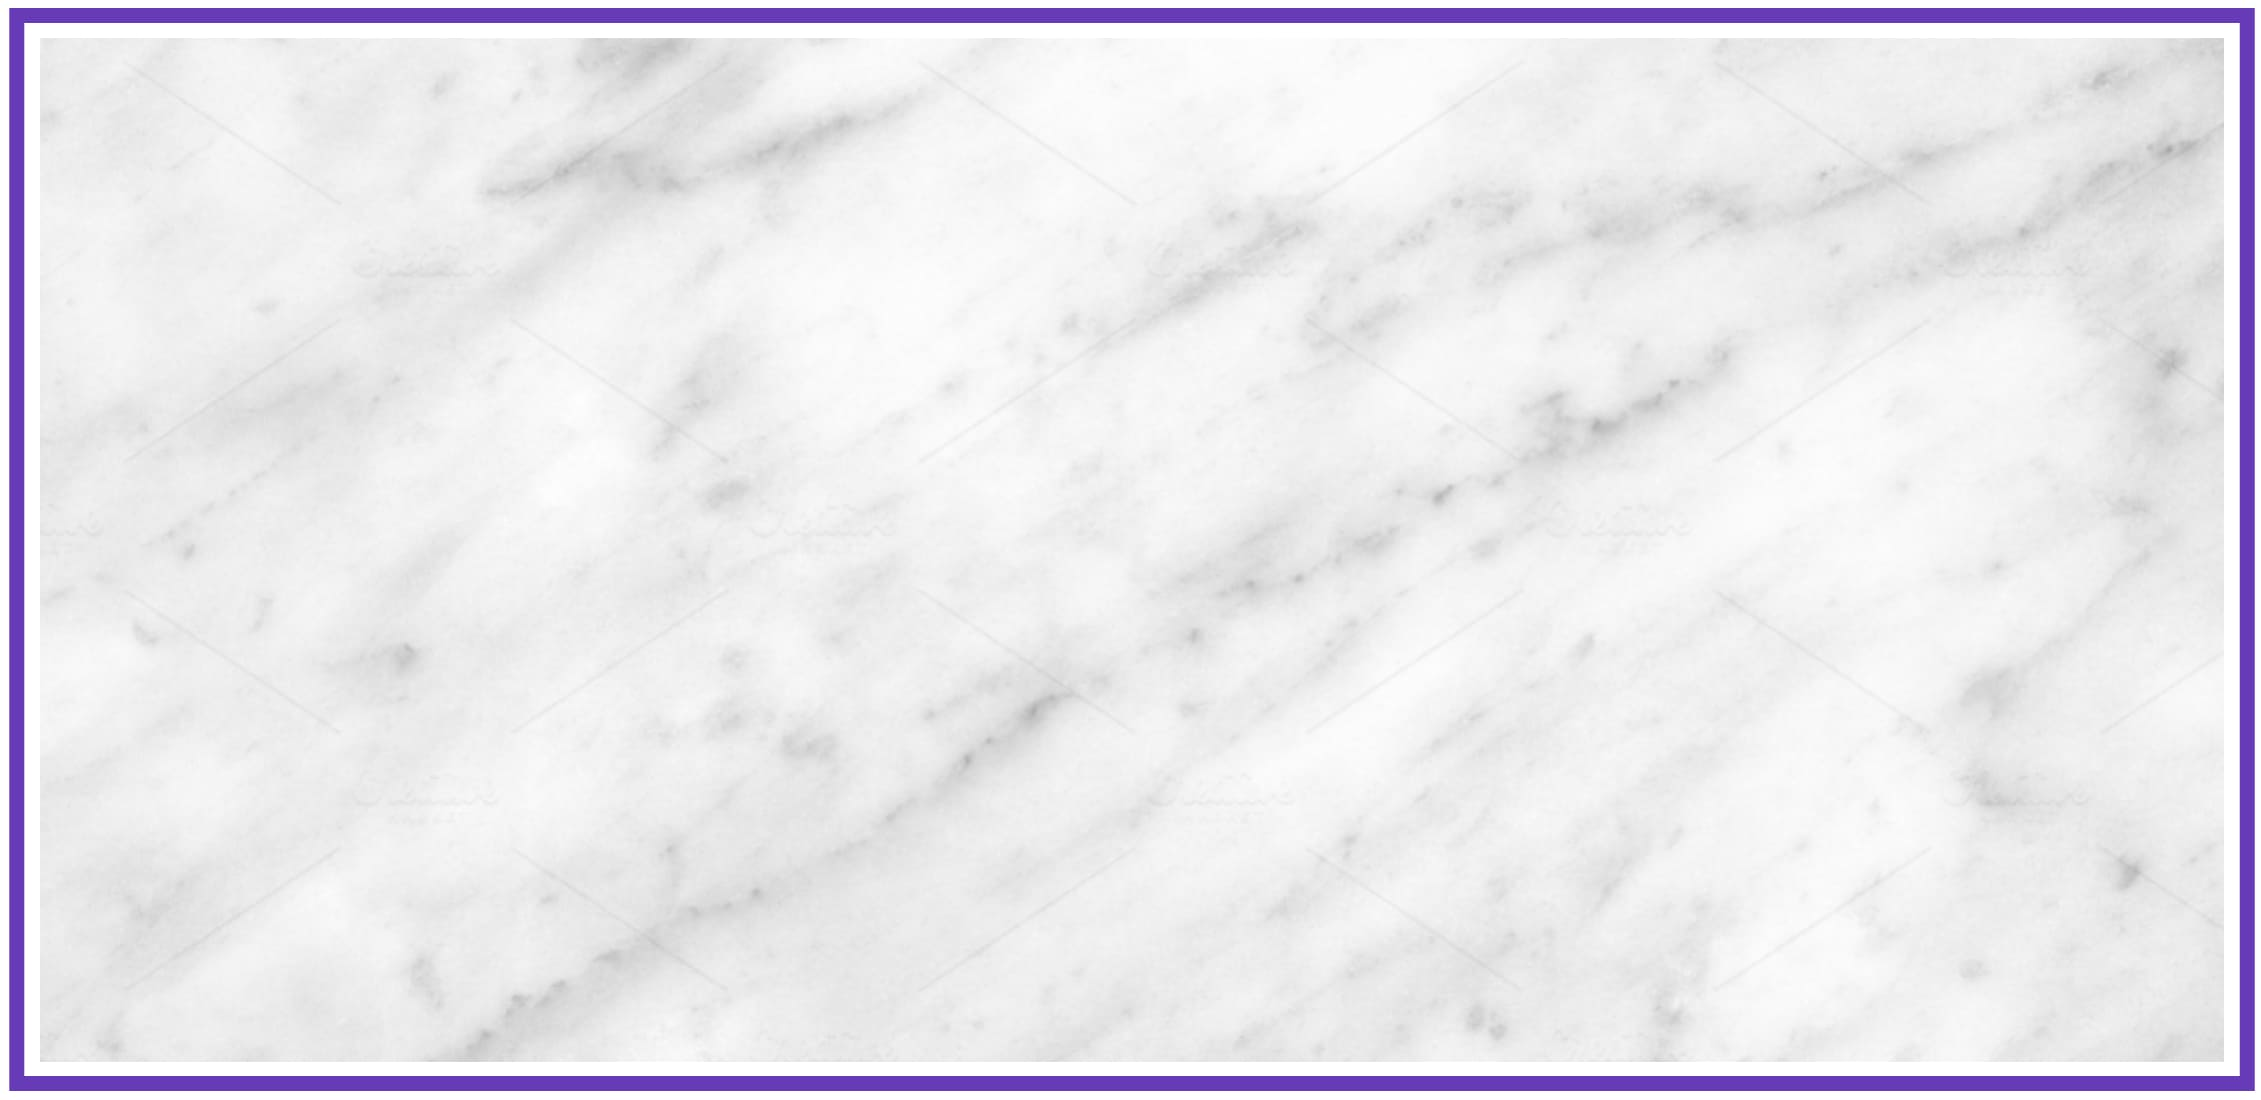 240+ Best Free Marble Background Images In Digital And Print Design 2021 - best marble background 20